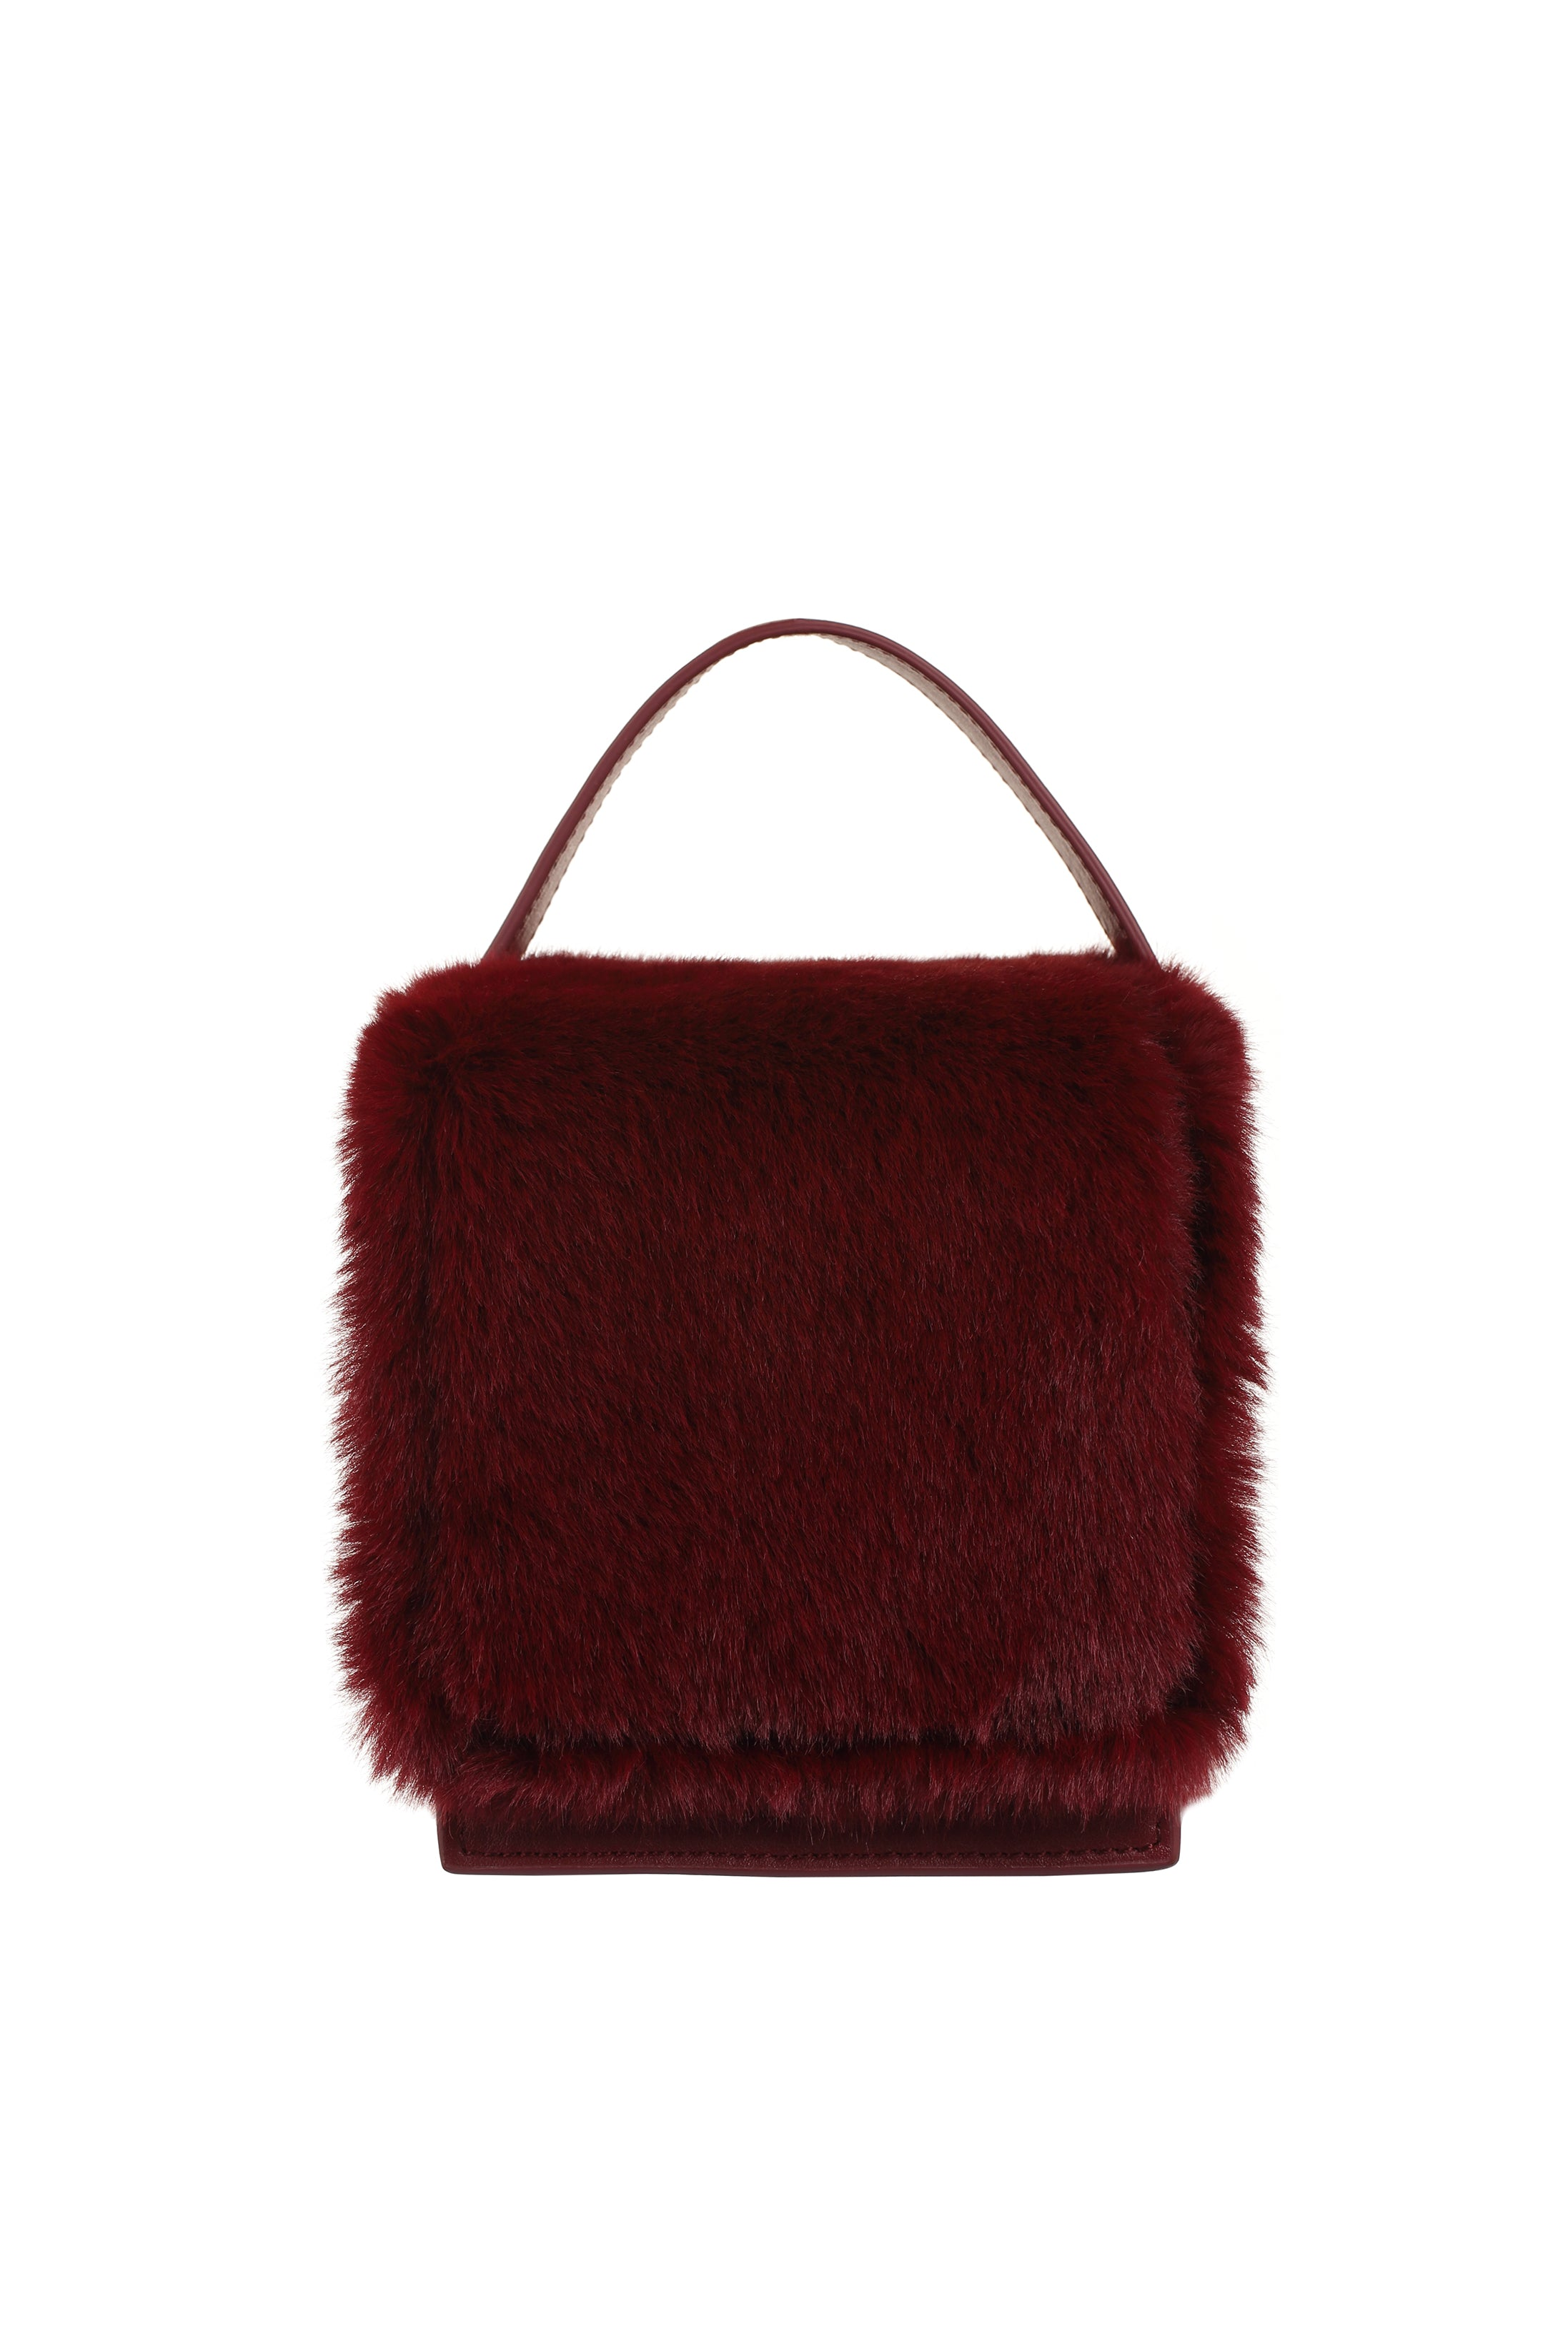 DUMBO Wine Leather & Fur Handle